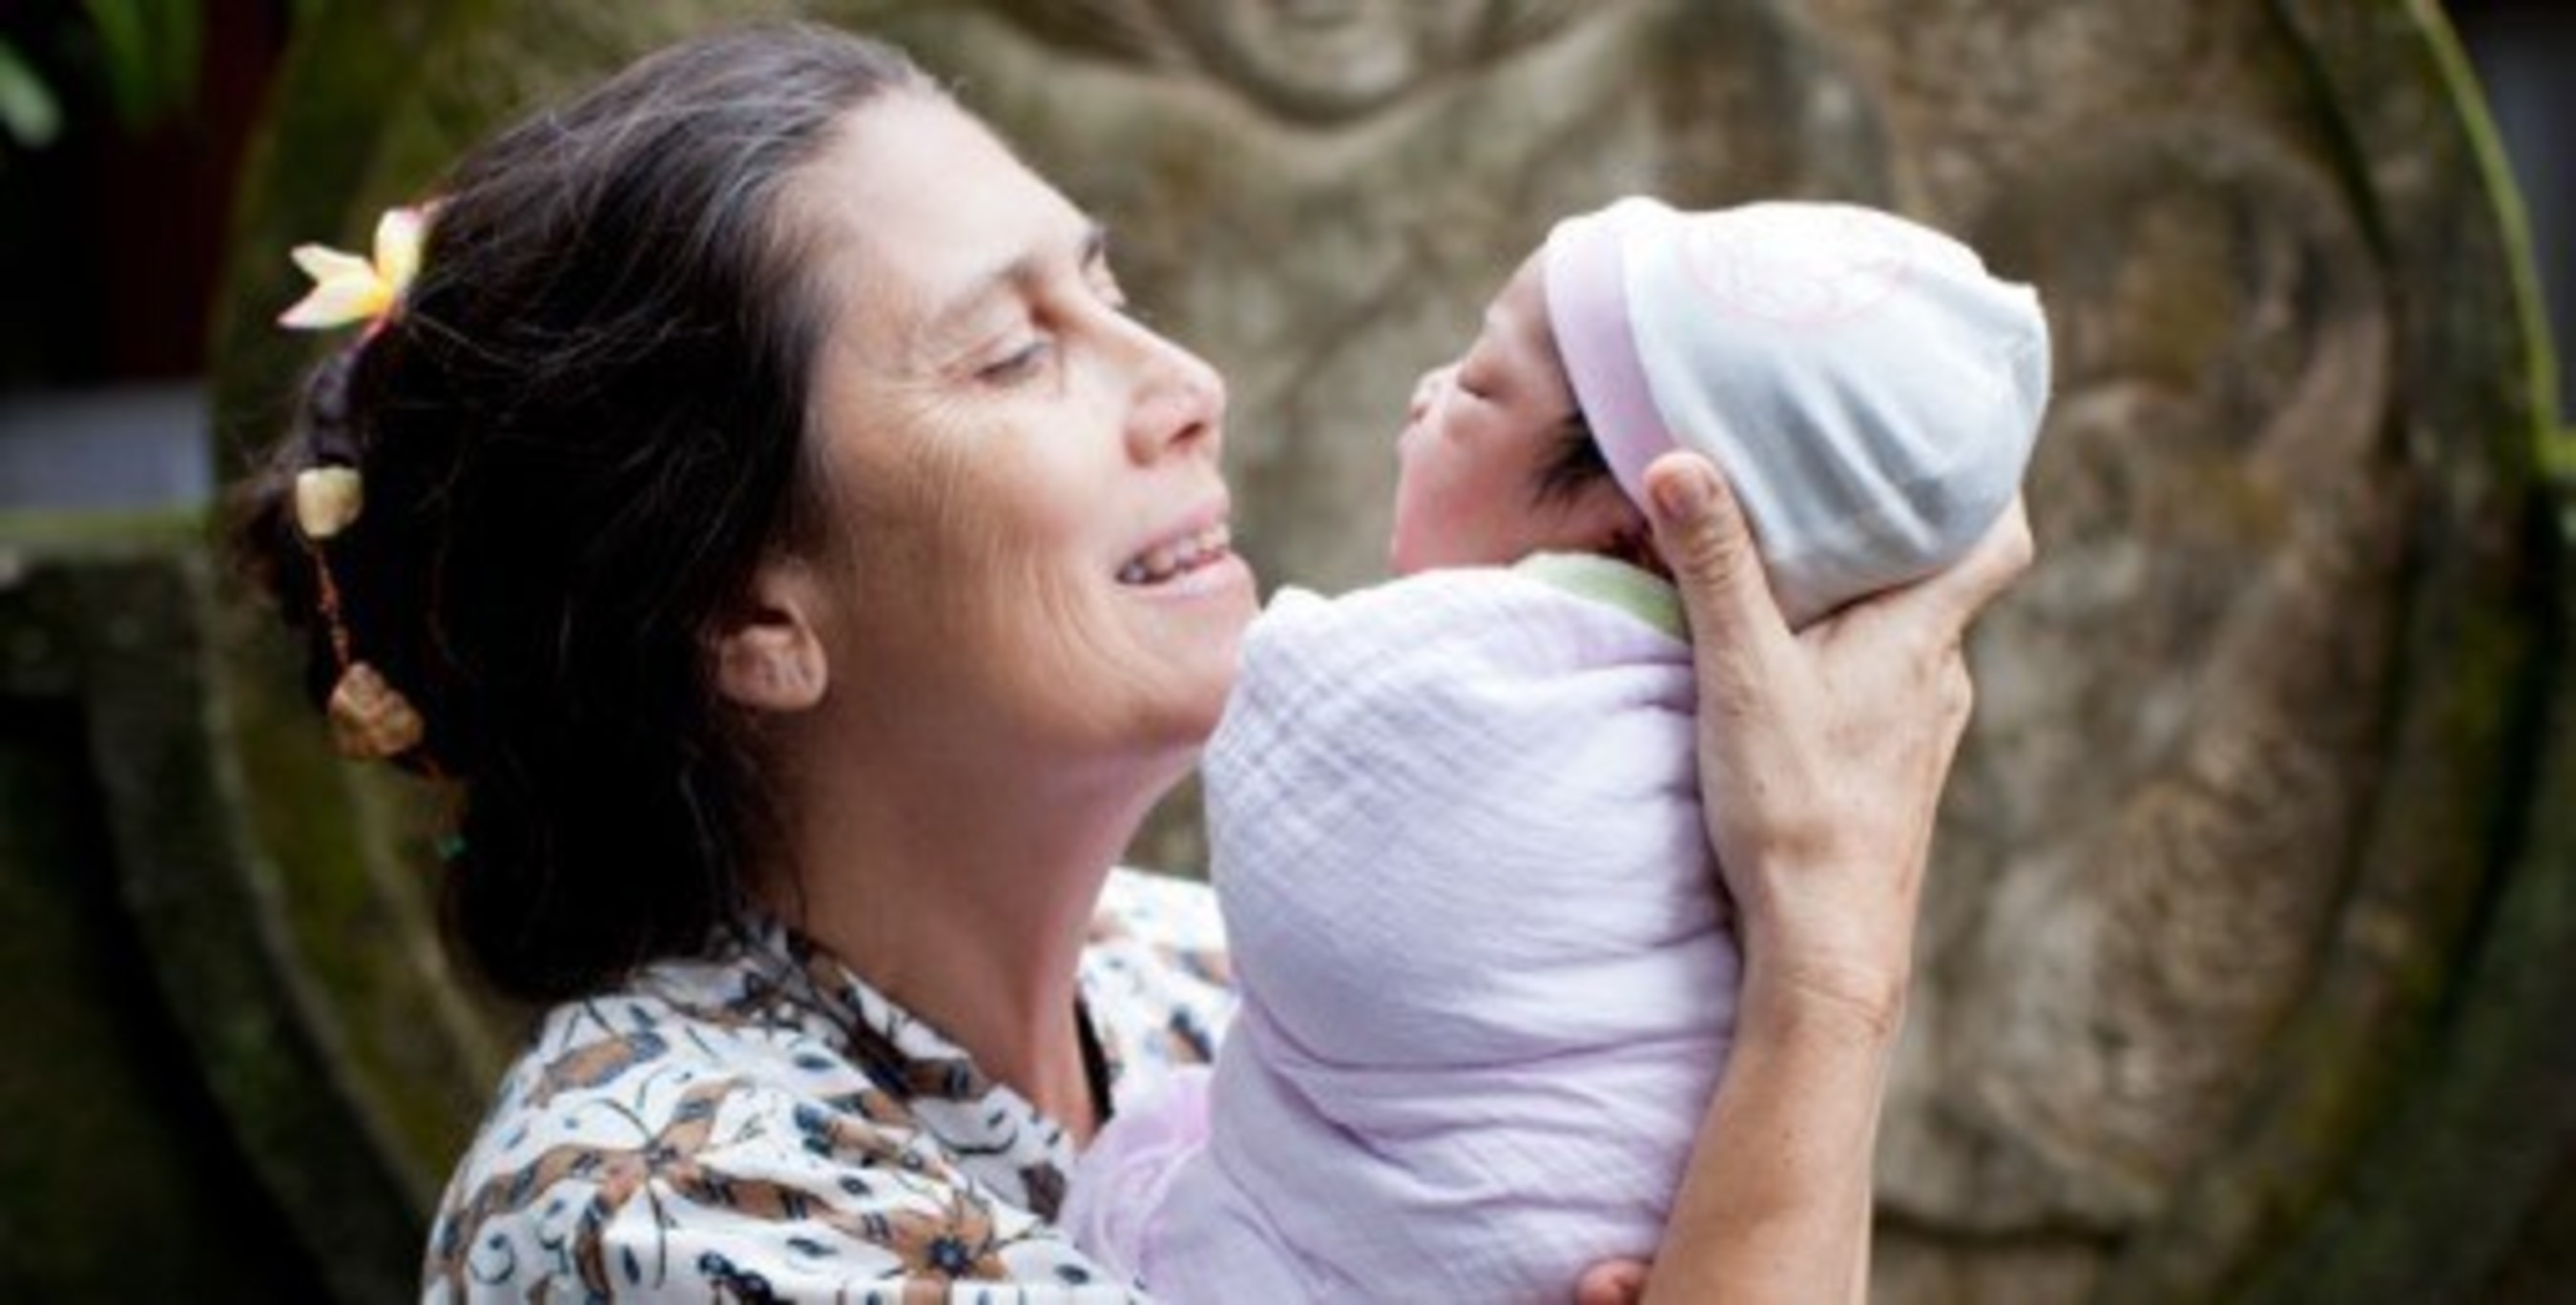 Hyperbiotics and Bumi Sehat, a powerful partnership pioneers free, gentle births for over 400 women in need